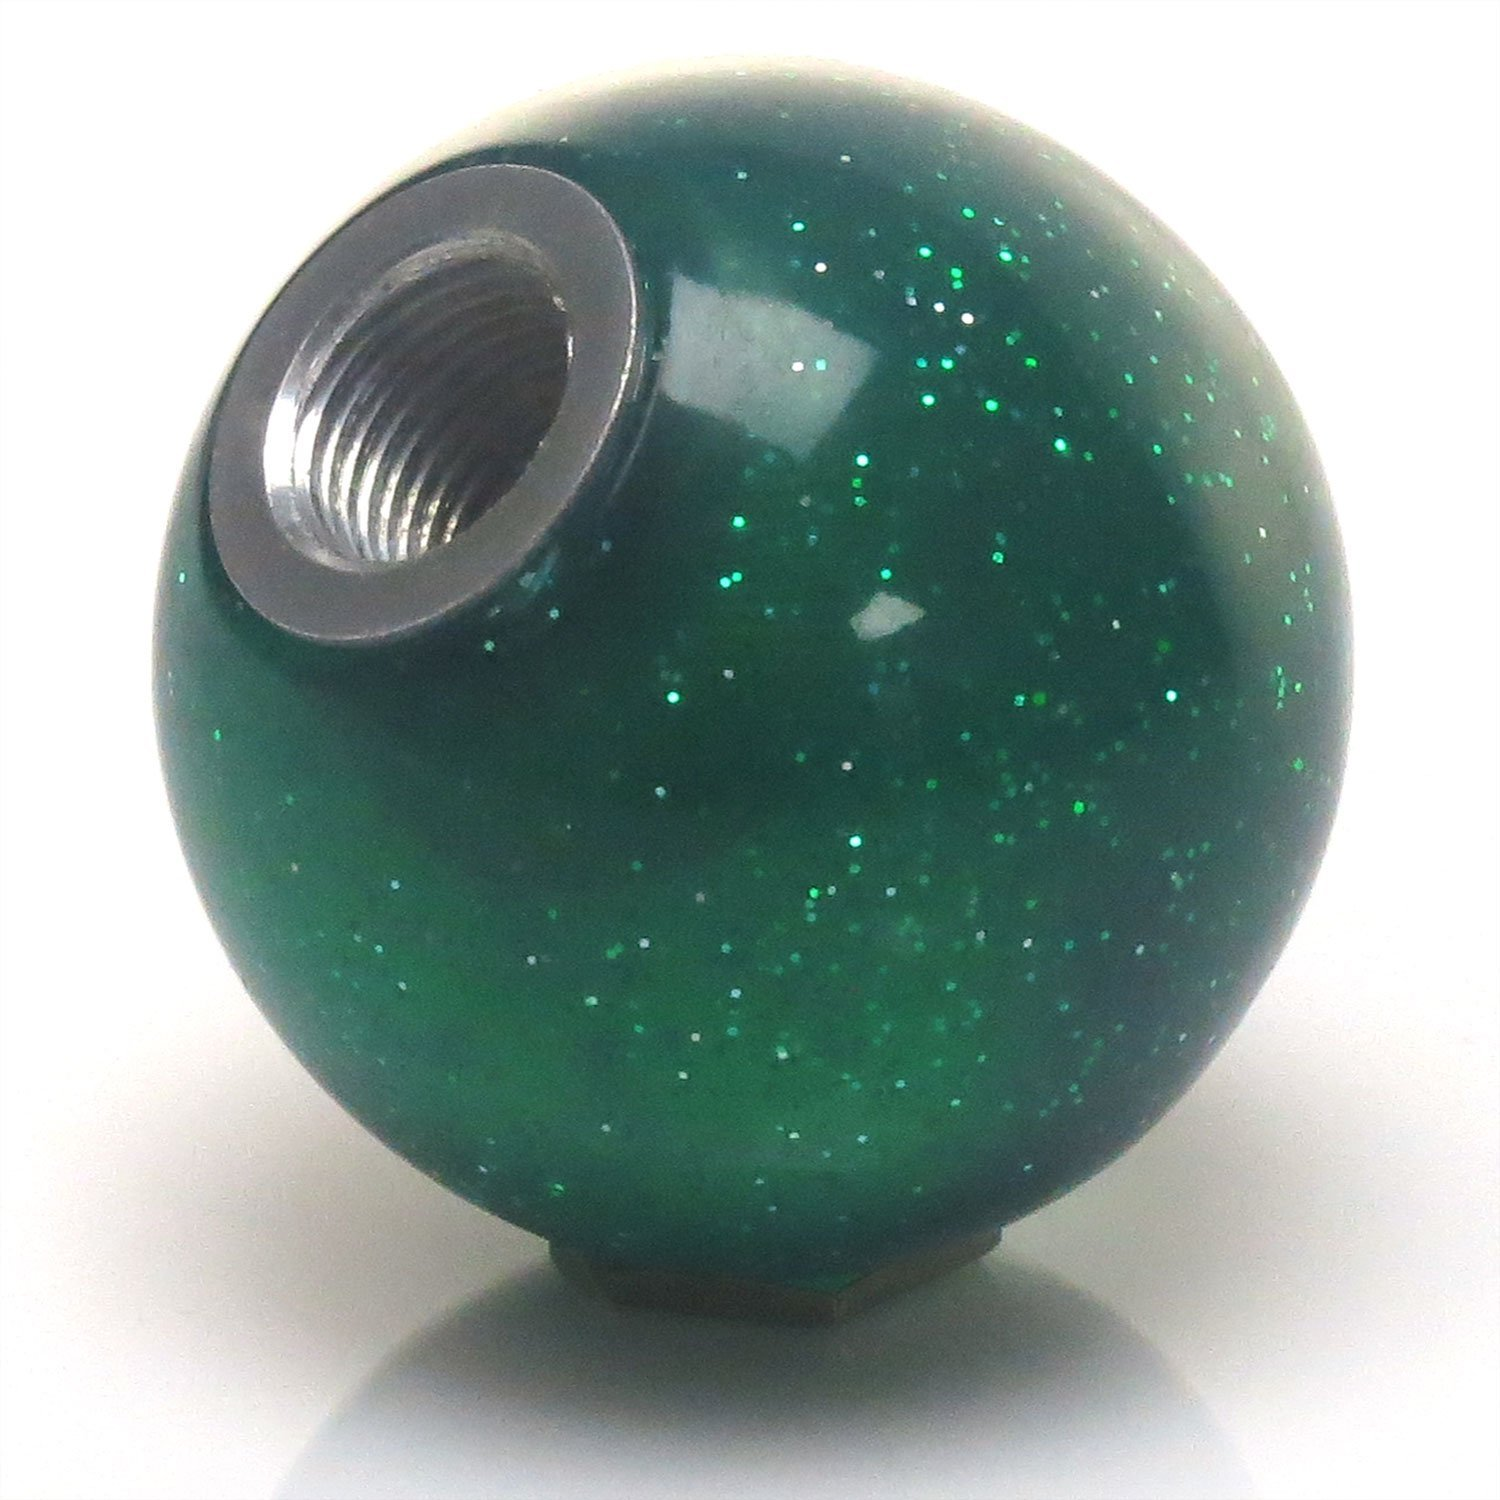 Black Dragon Ball Z - 6 Star American Shifter 141758 Green Metal Flake Shift Knob with M16 x 1.5 Insert